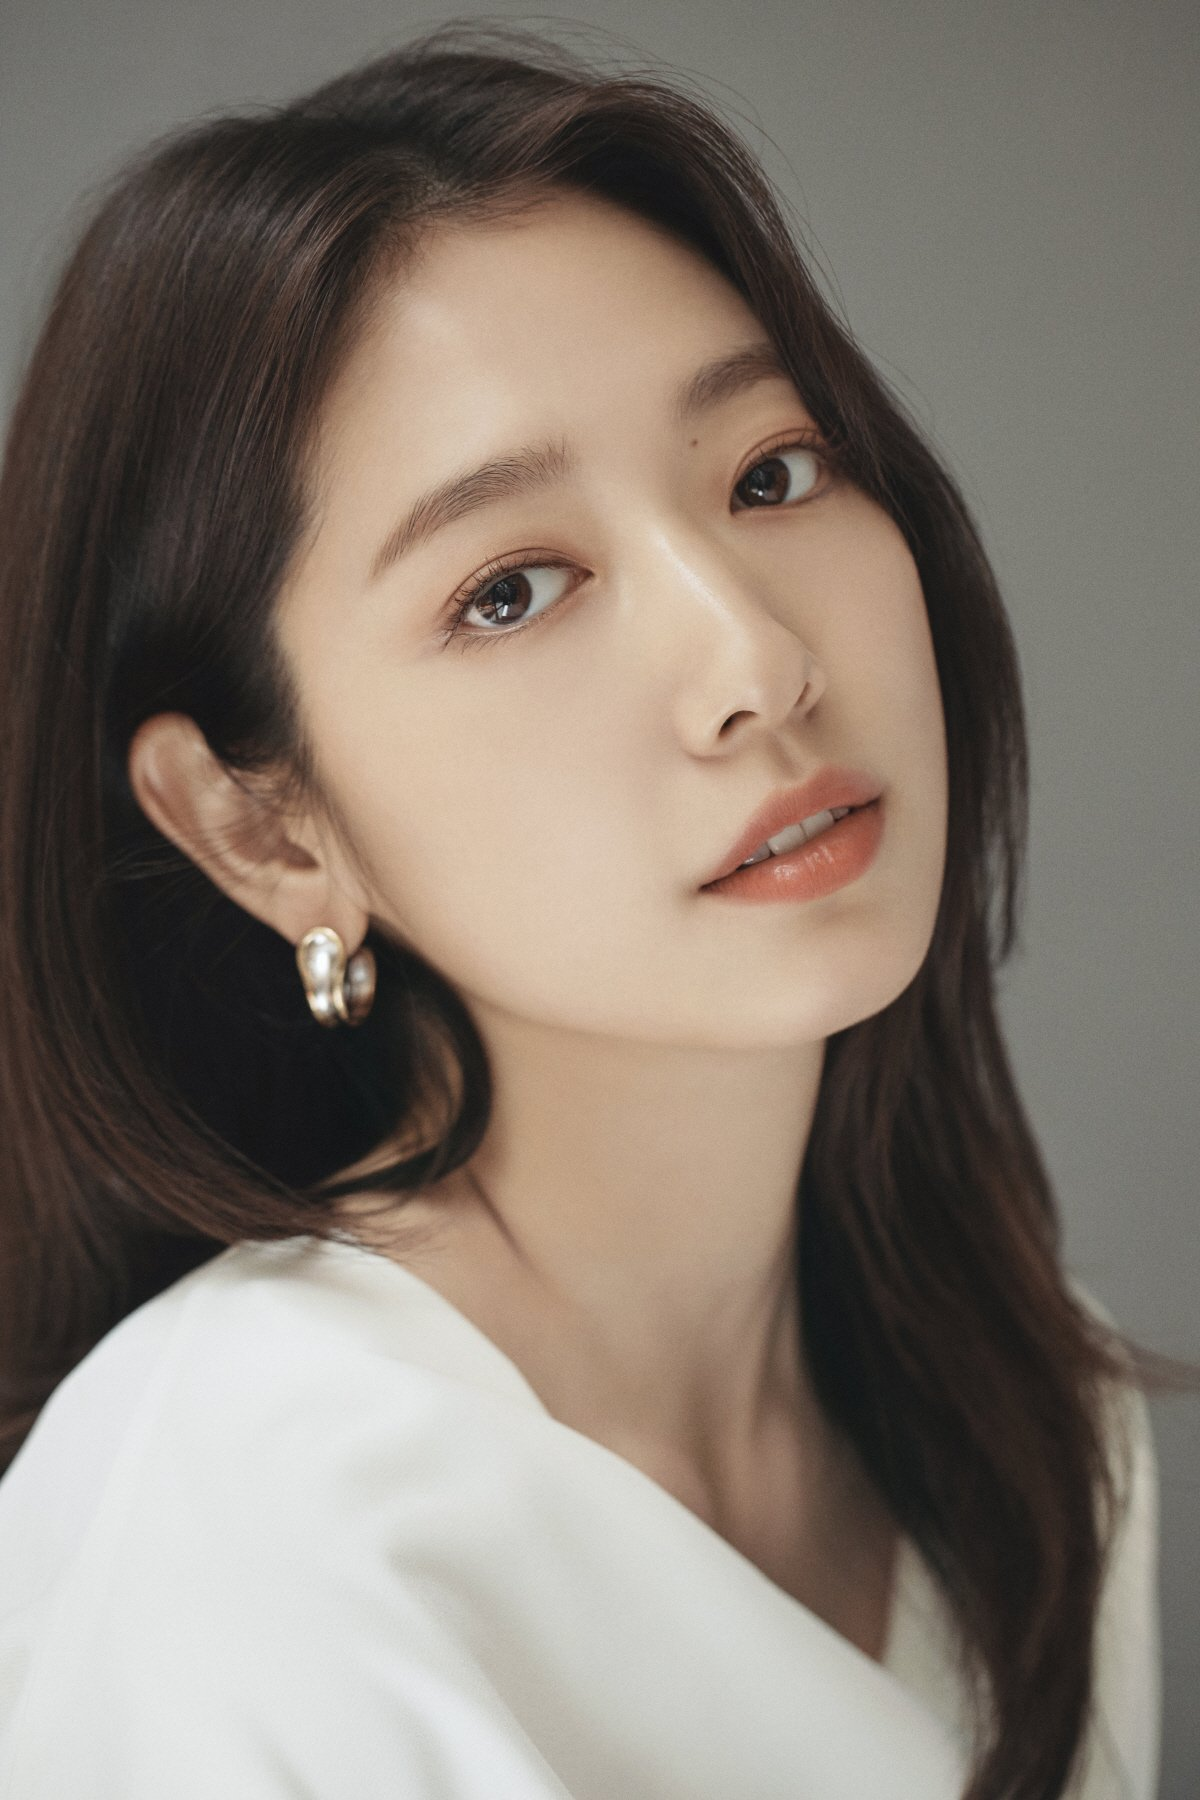 Park Shin Hye Talks About Her New Thriller Film Call